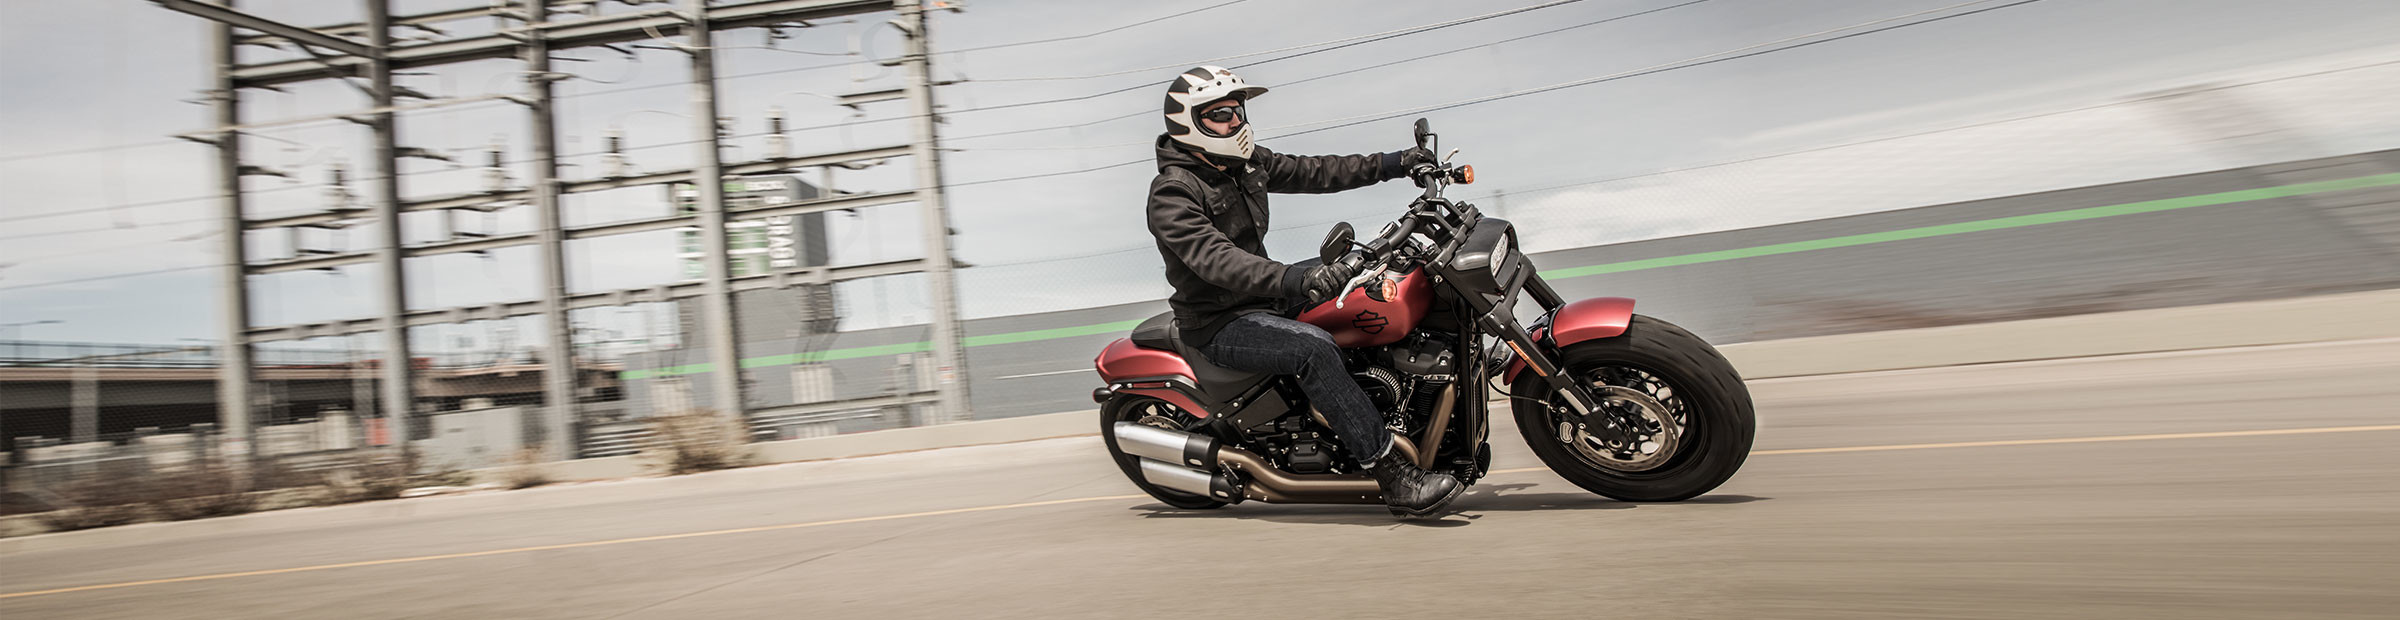 Test Rides at Black Bear Harley-Davidson®